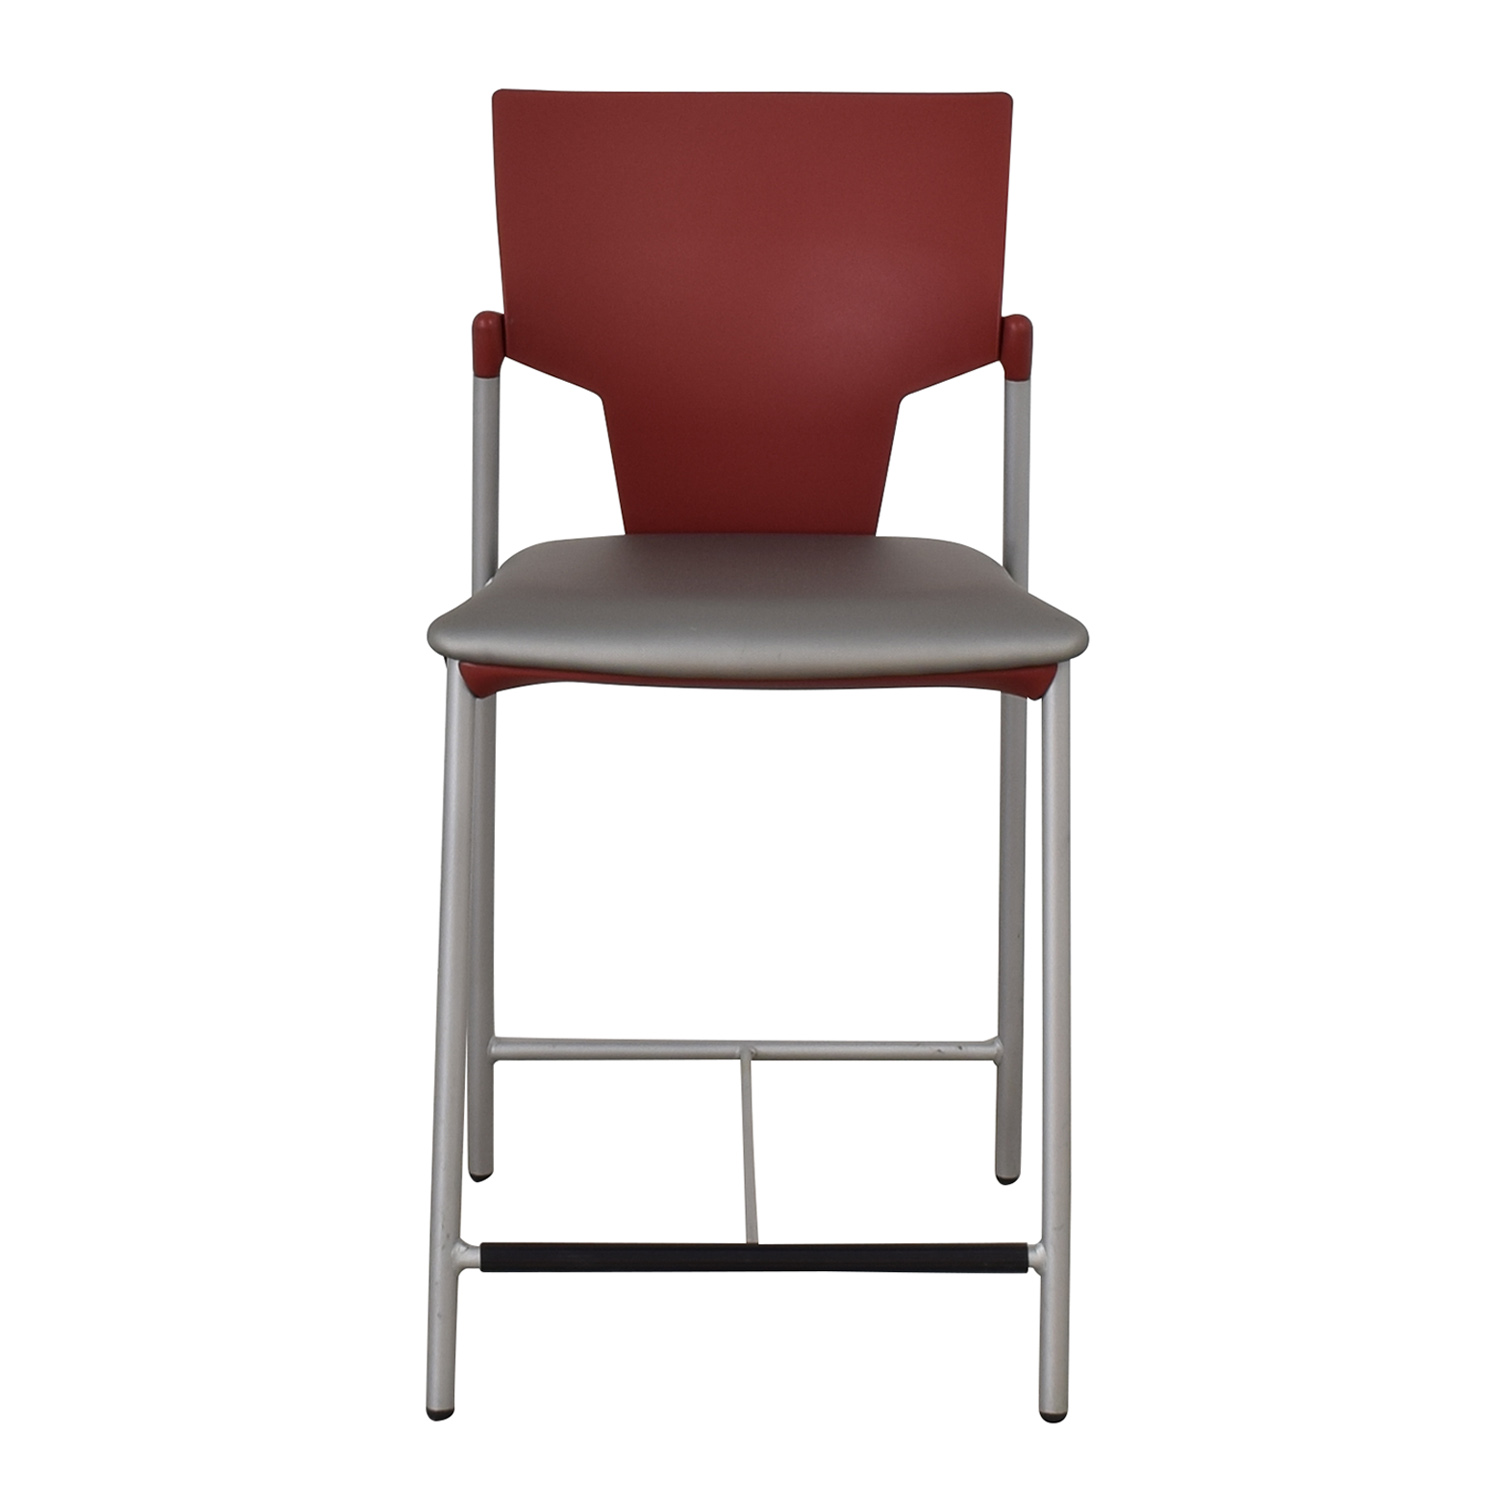 Officeworks Officeworks Bar Stool for sale